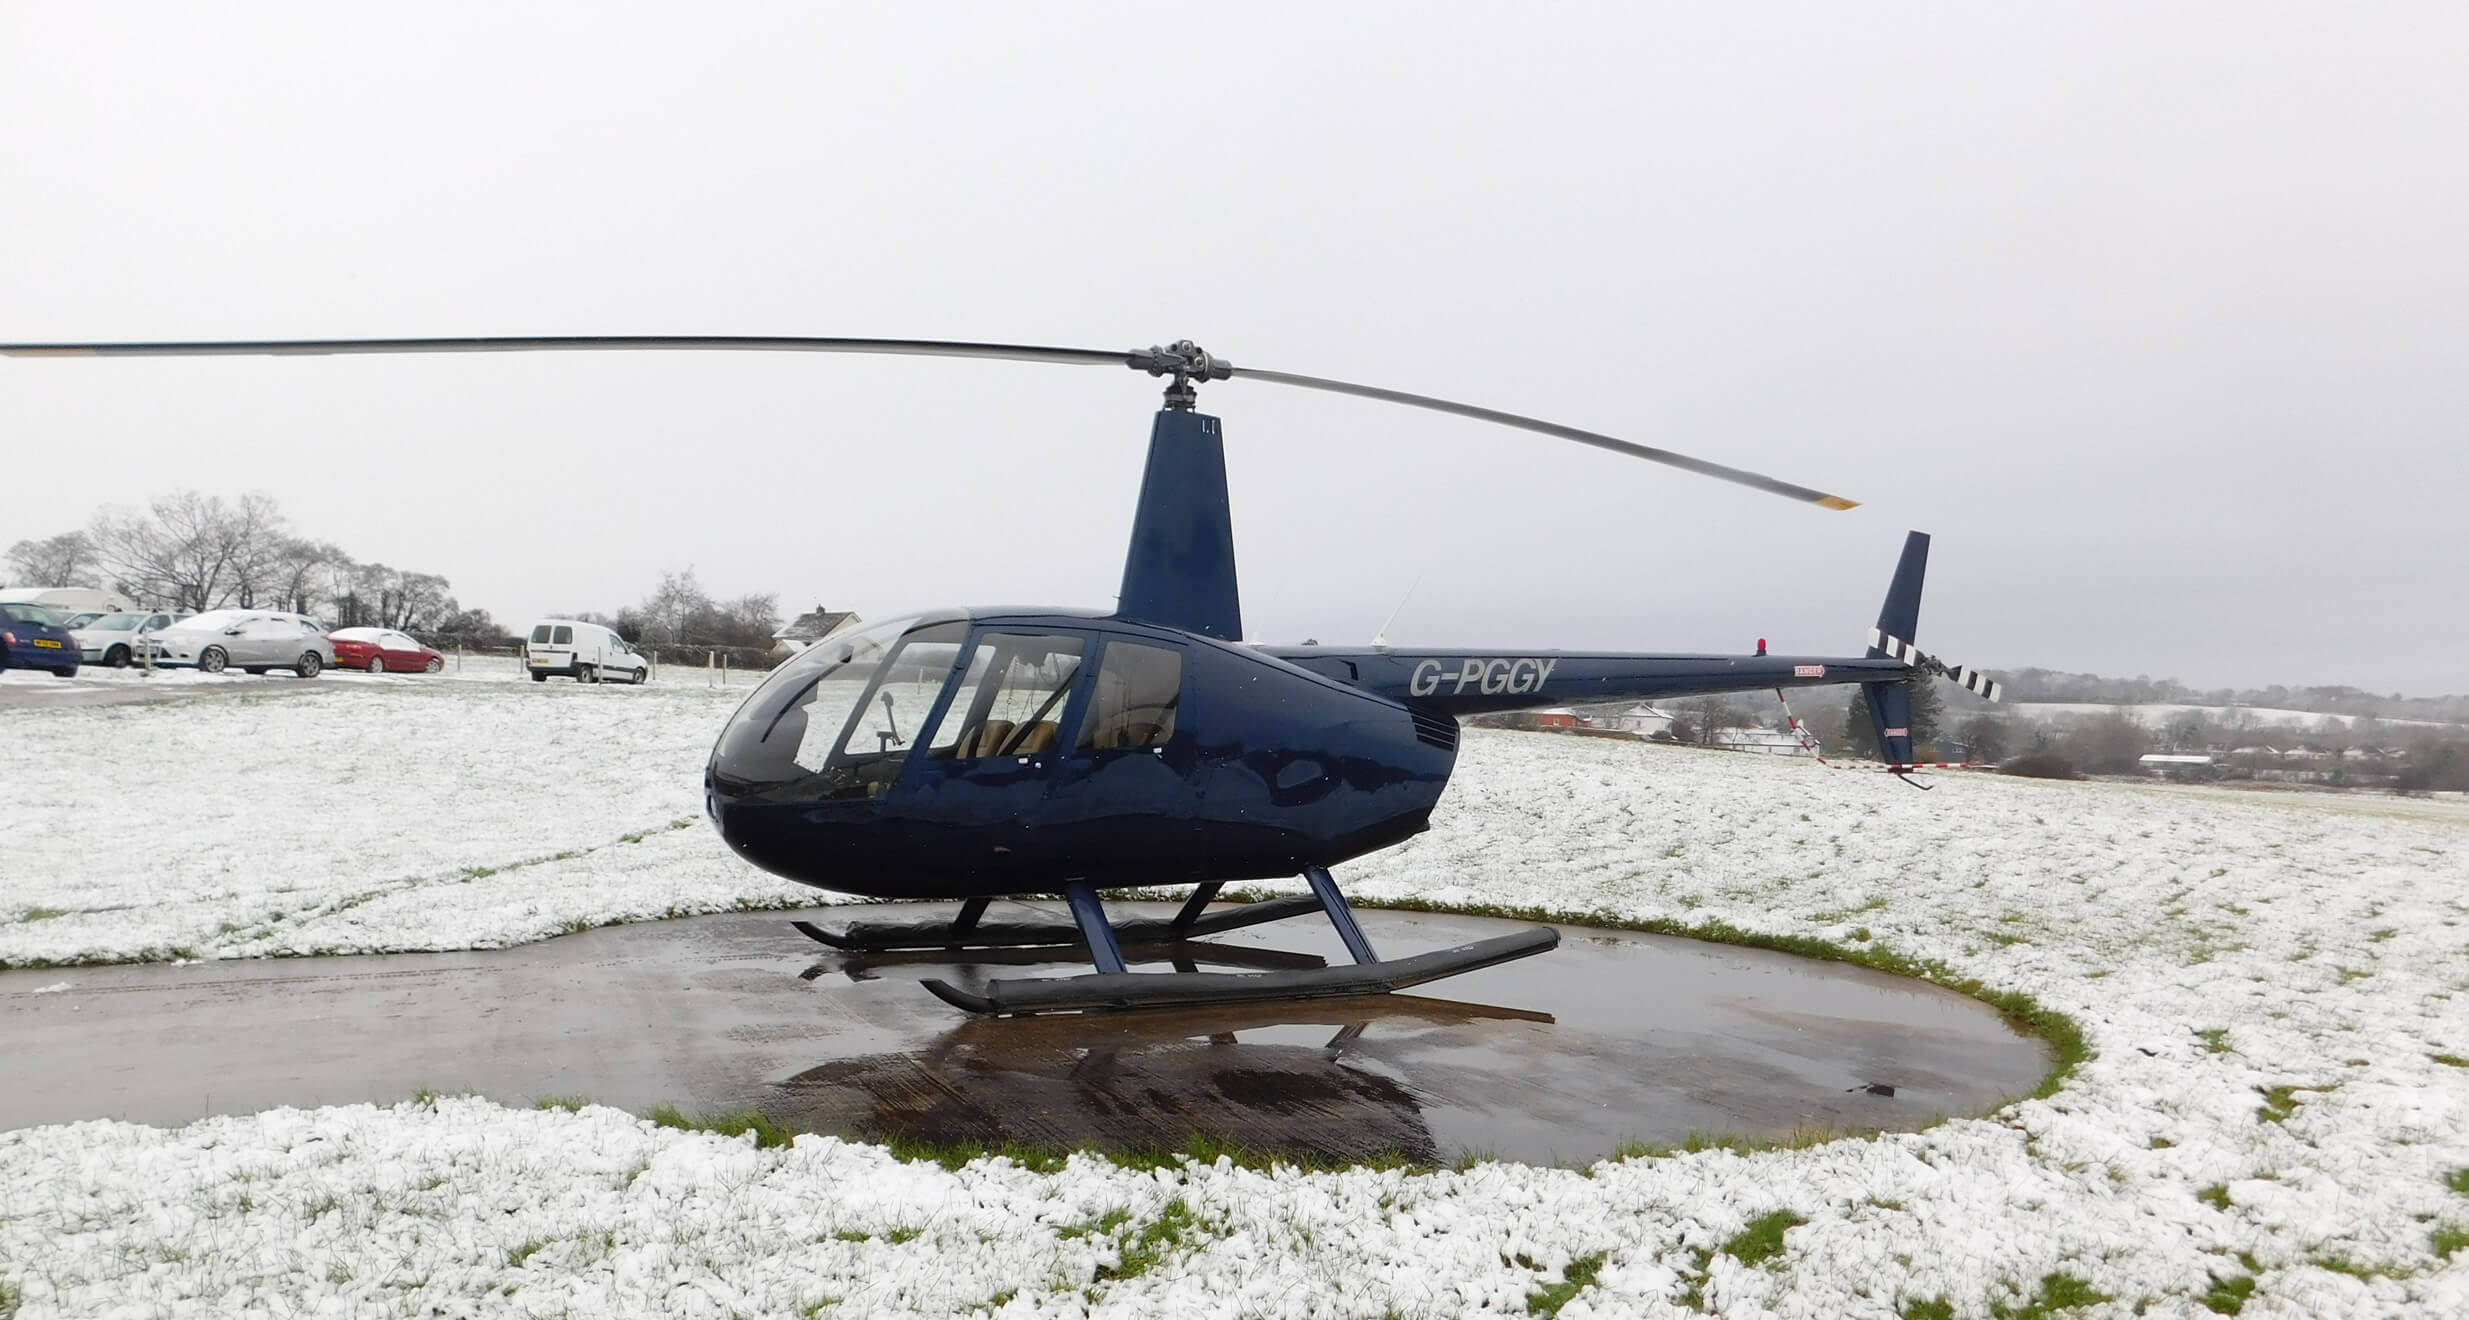 Robinson R44 on the pad ready to charter